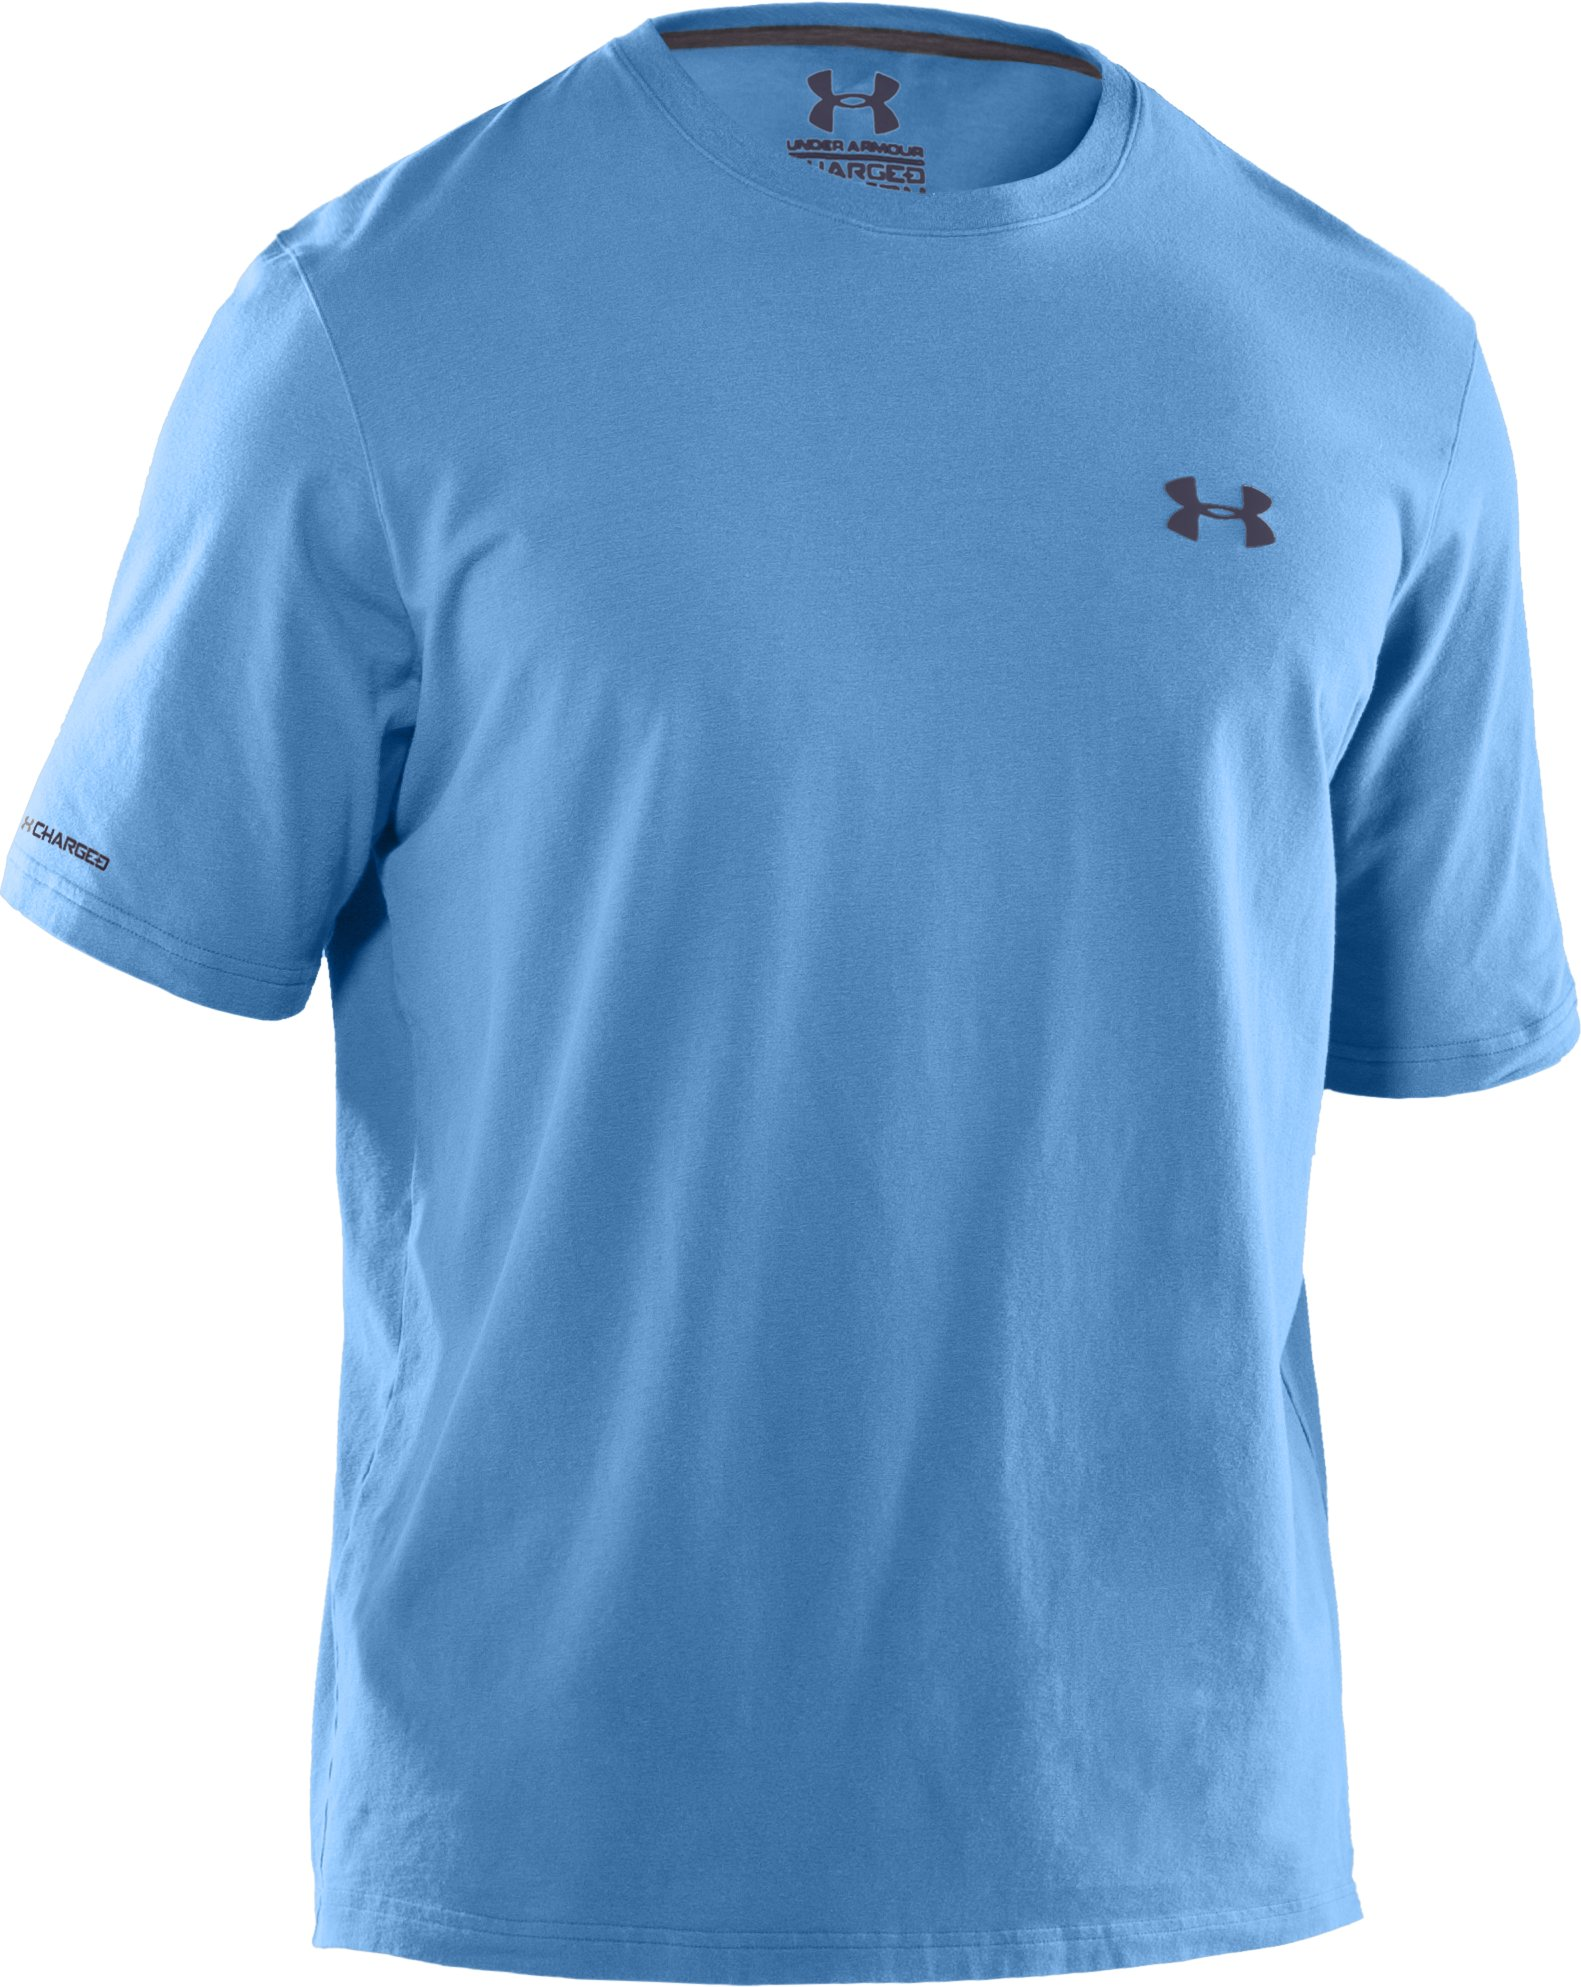 Men's Charged Cotton® T-Shirt, Carolina Blue, undefined